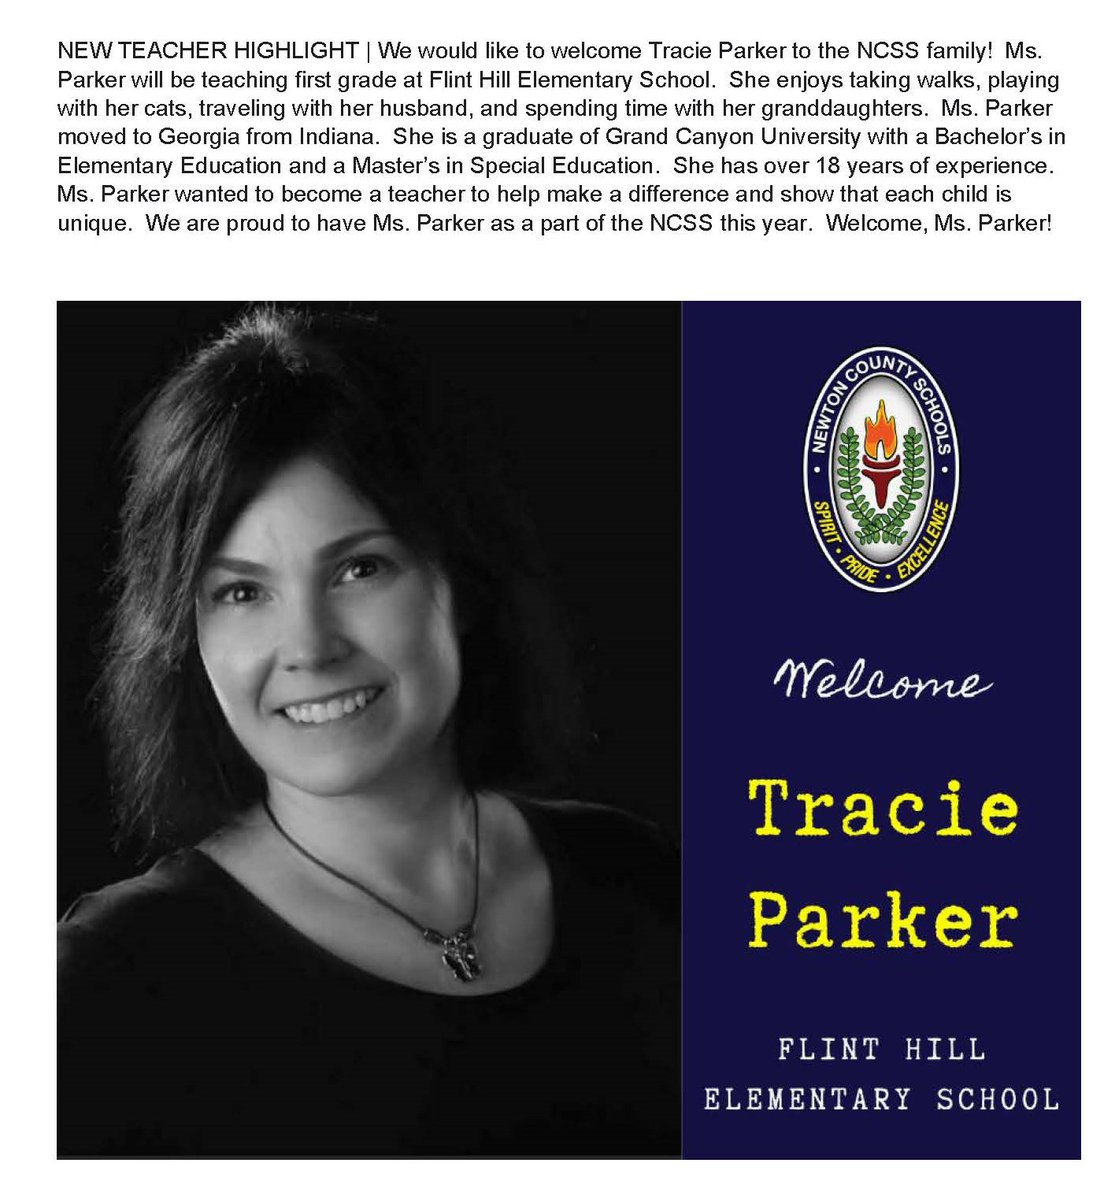 We welcome Ms. Tracie Parker to the @FHESWolfpack @FHES_TWEET & NCSS Team! #NCSSBeTheBest